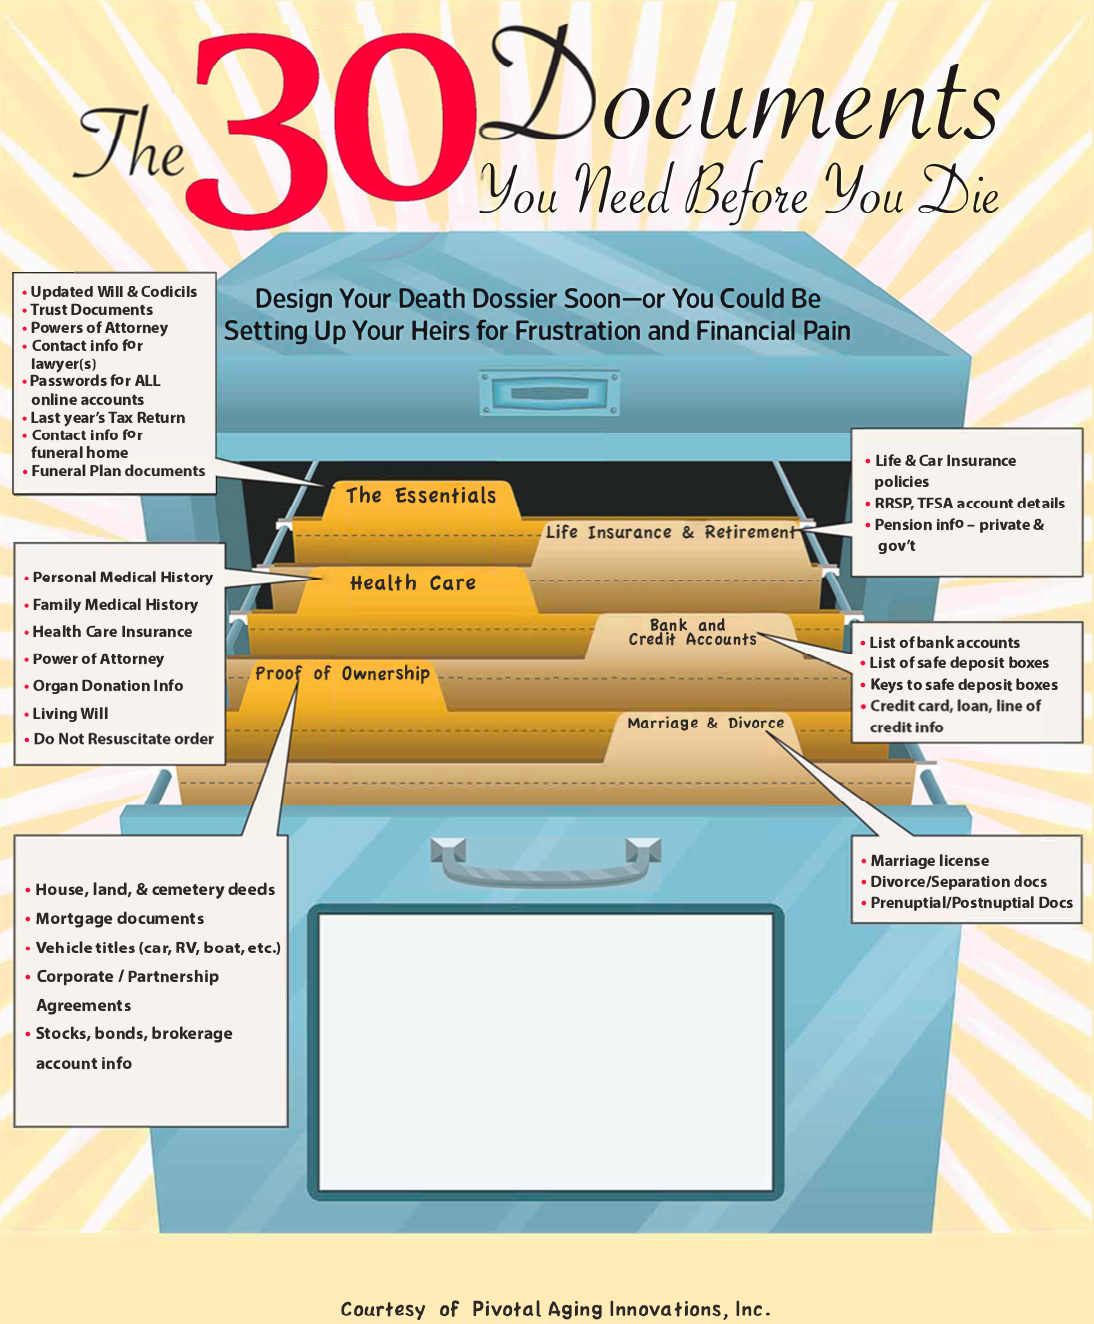 30 Documents You Need Before You Die